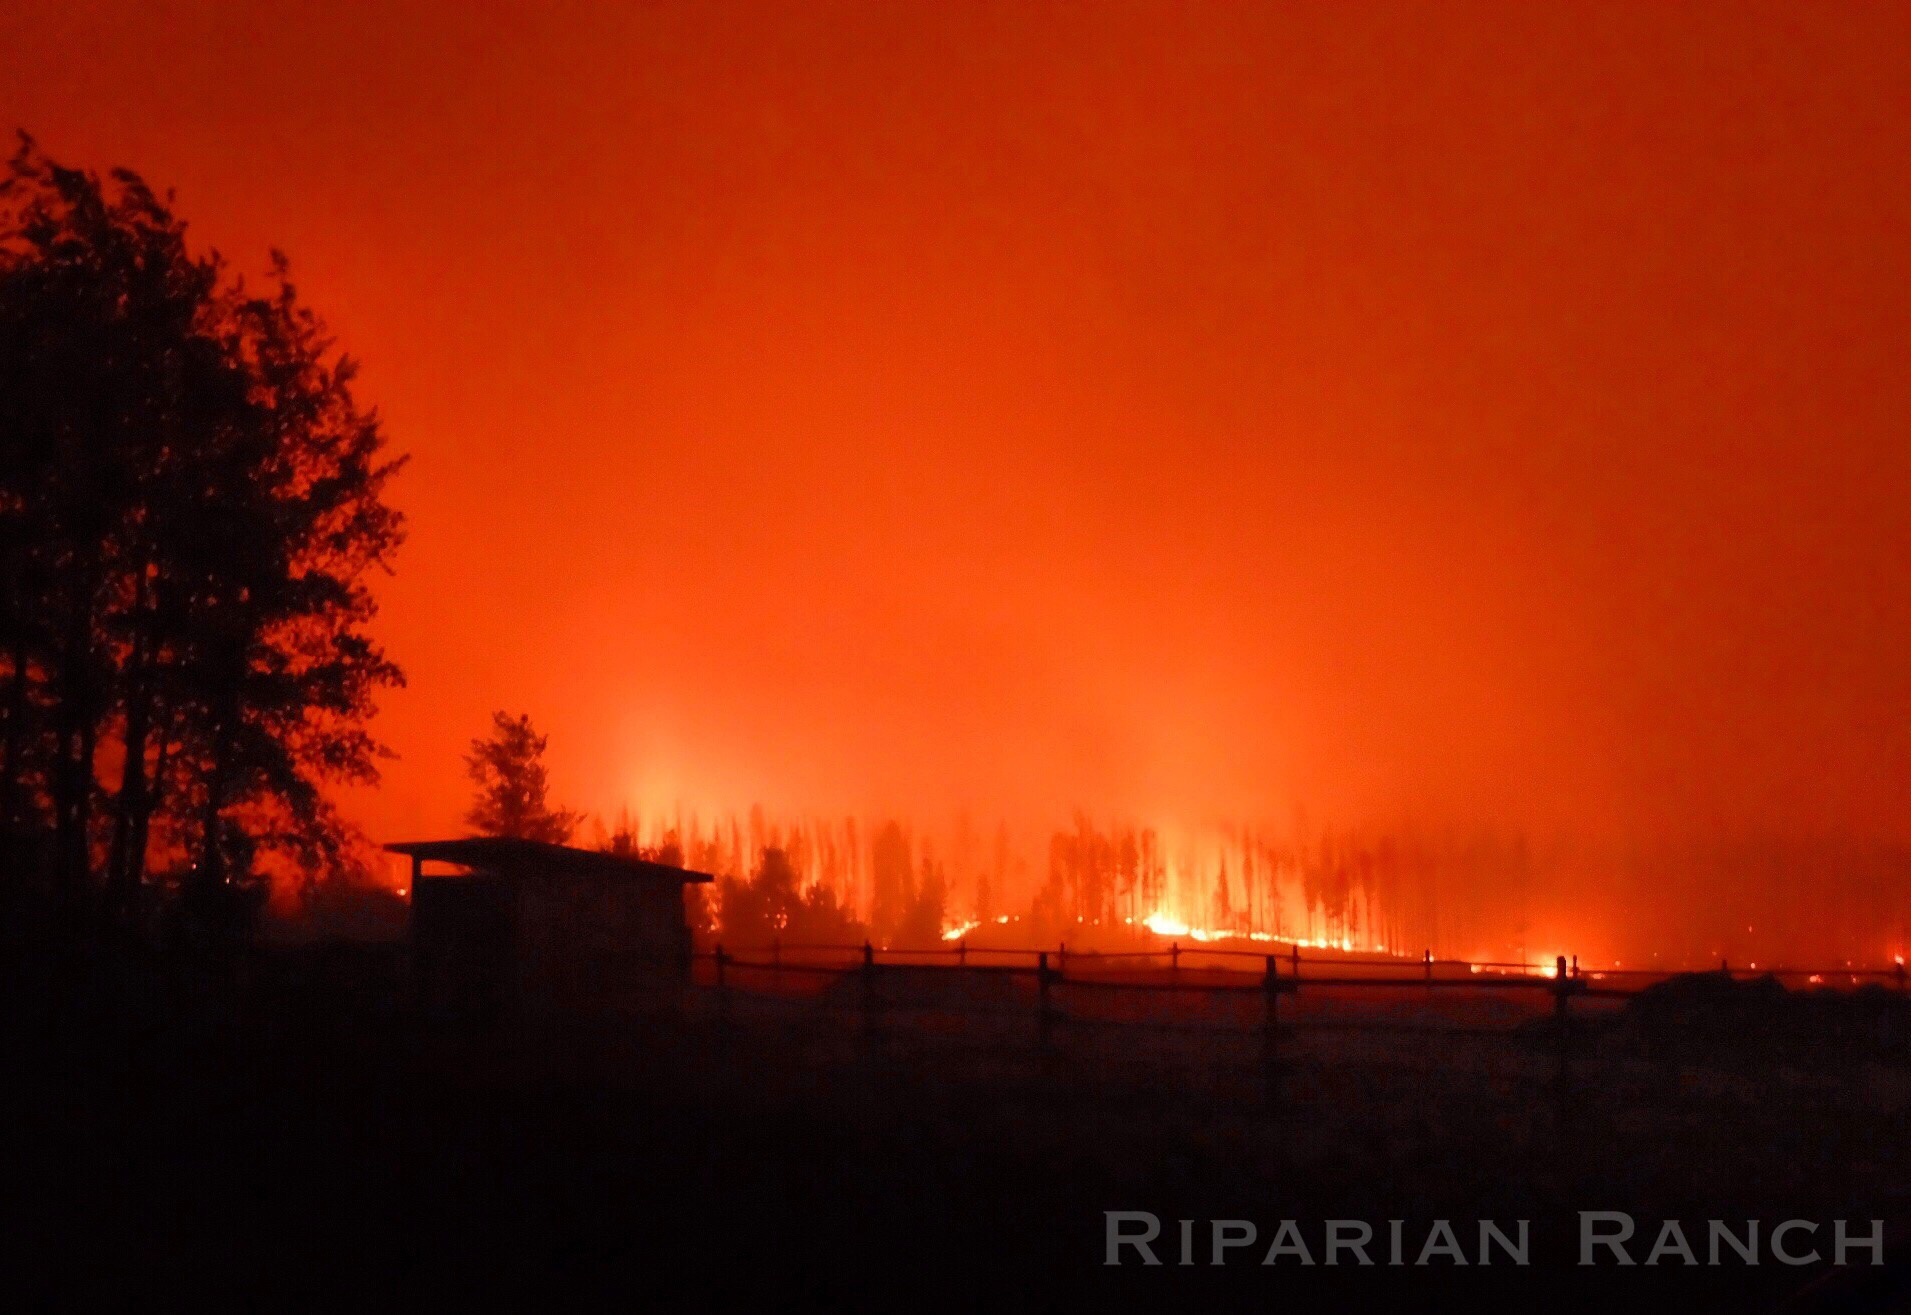 Wildfires scour the landscape around Riparian Ranch